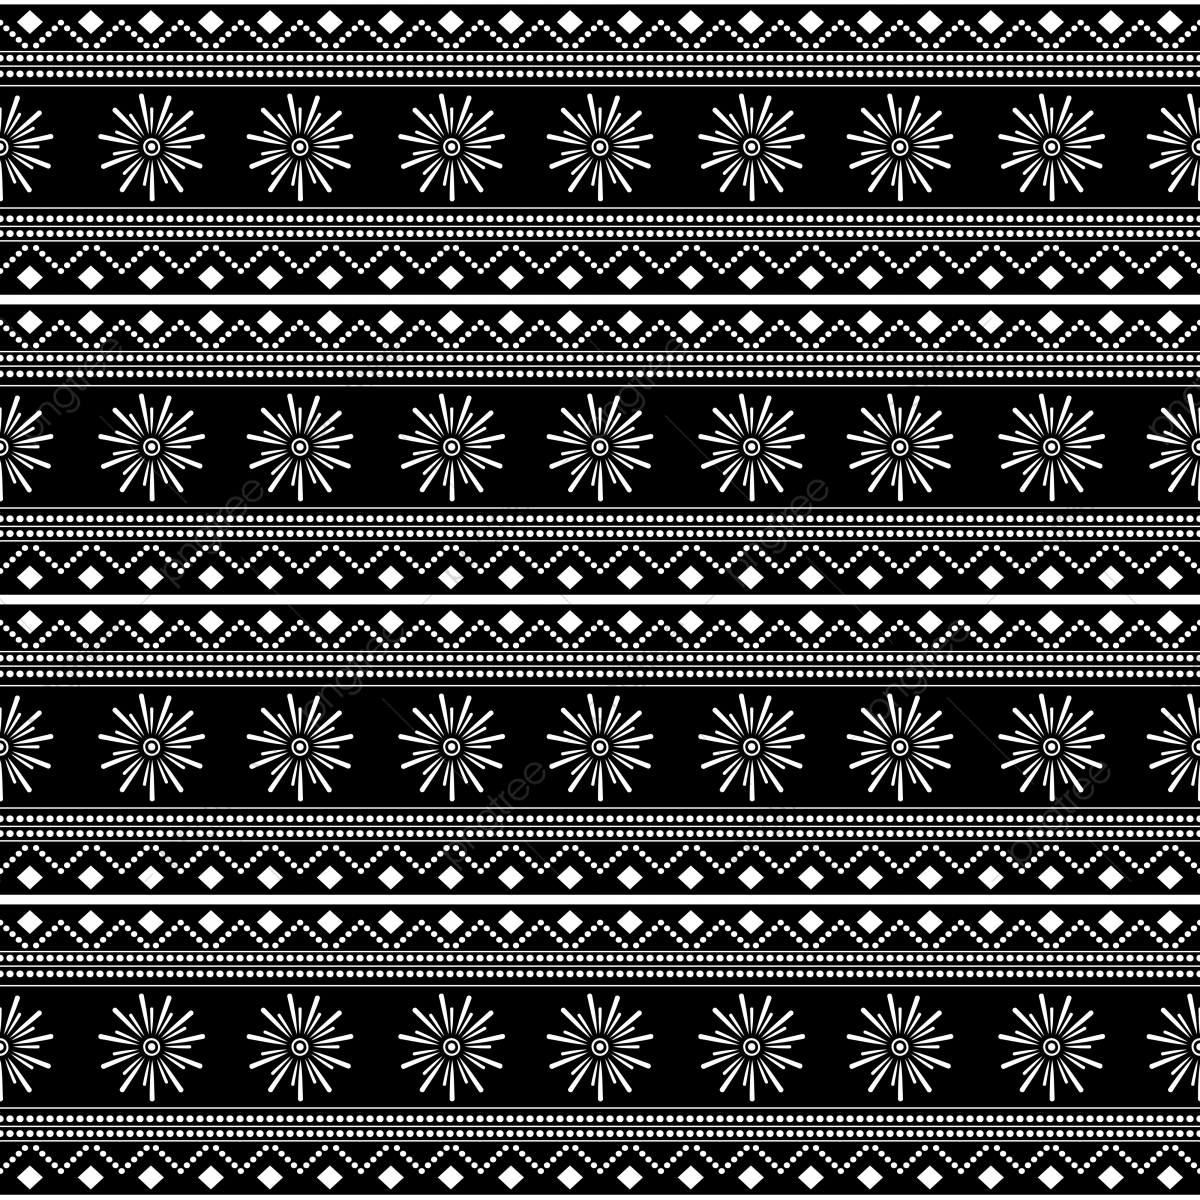 batik hitam putih png vector psd and clipart with transparent background for free download pngtree https pngtree com freepng black and white tribal seamless pattern vector illustration with stripes drawing mandala stars batik motif 3995613 html